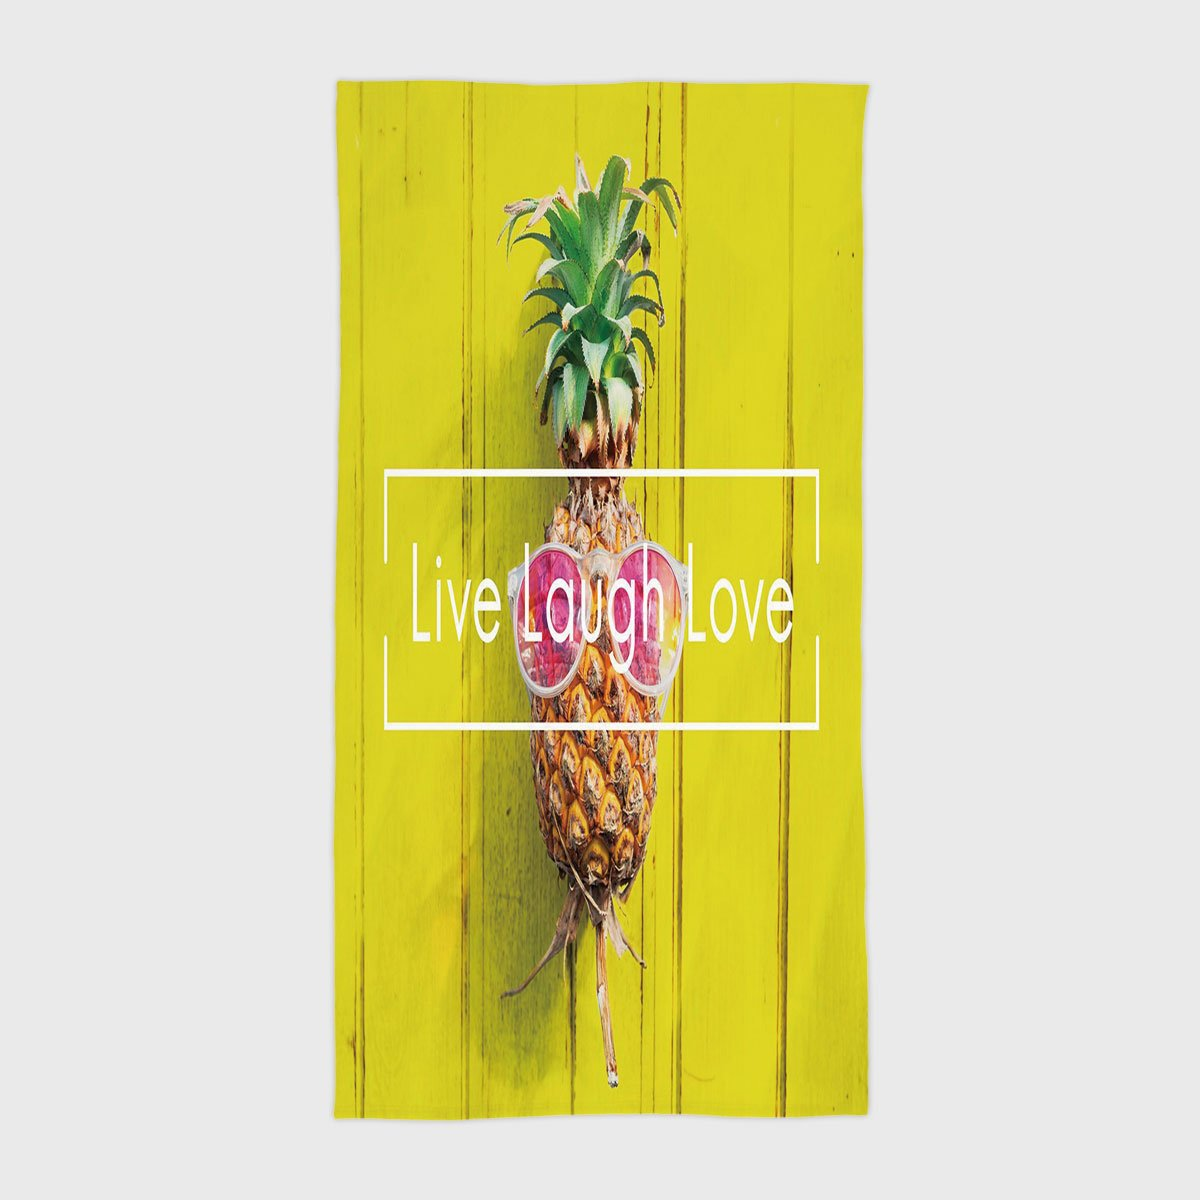 Cotton Microfiber Hotel SPA Beach Pool Bath Hand Towel,Live Laugh Love Decor,Tropical Pineapple with Sunglasses on Yellow Wood Board Joyful Print Decorative,Multicolor,for Kids, Teens, and Adults